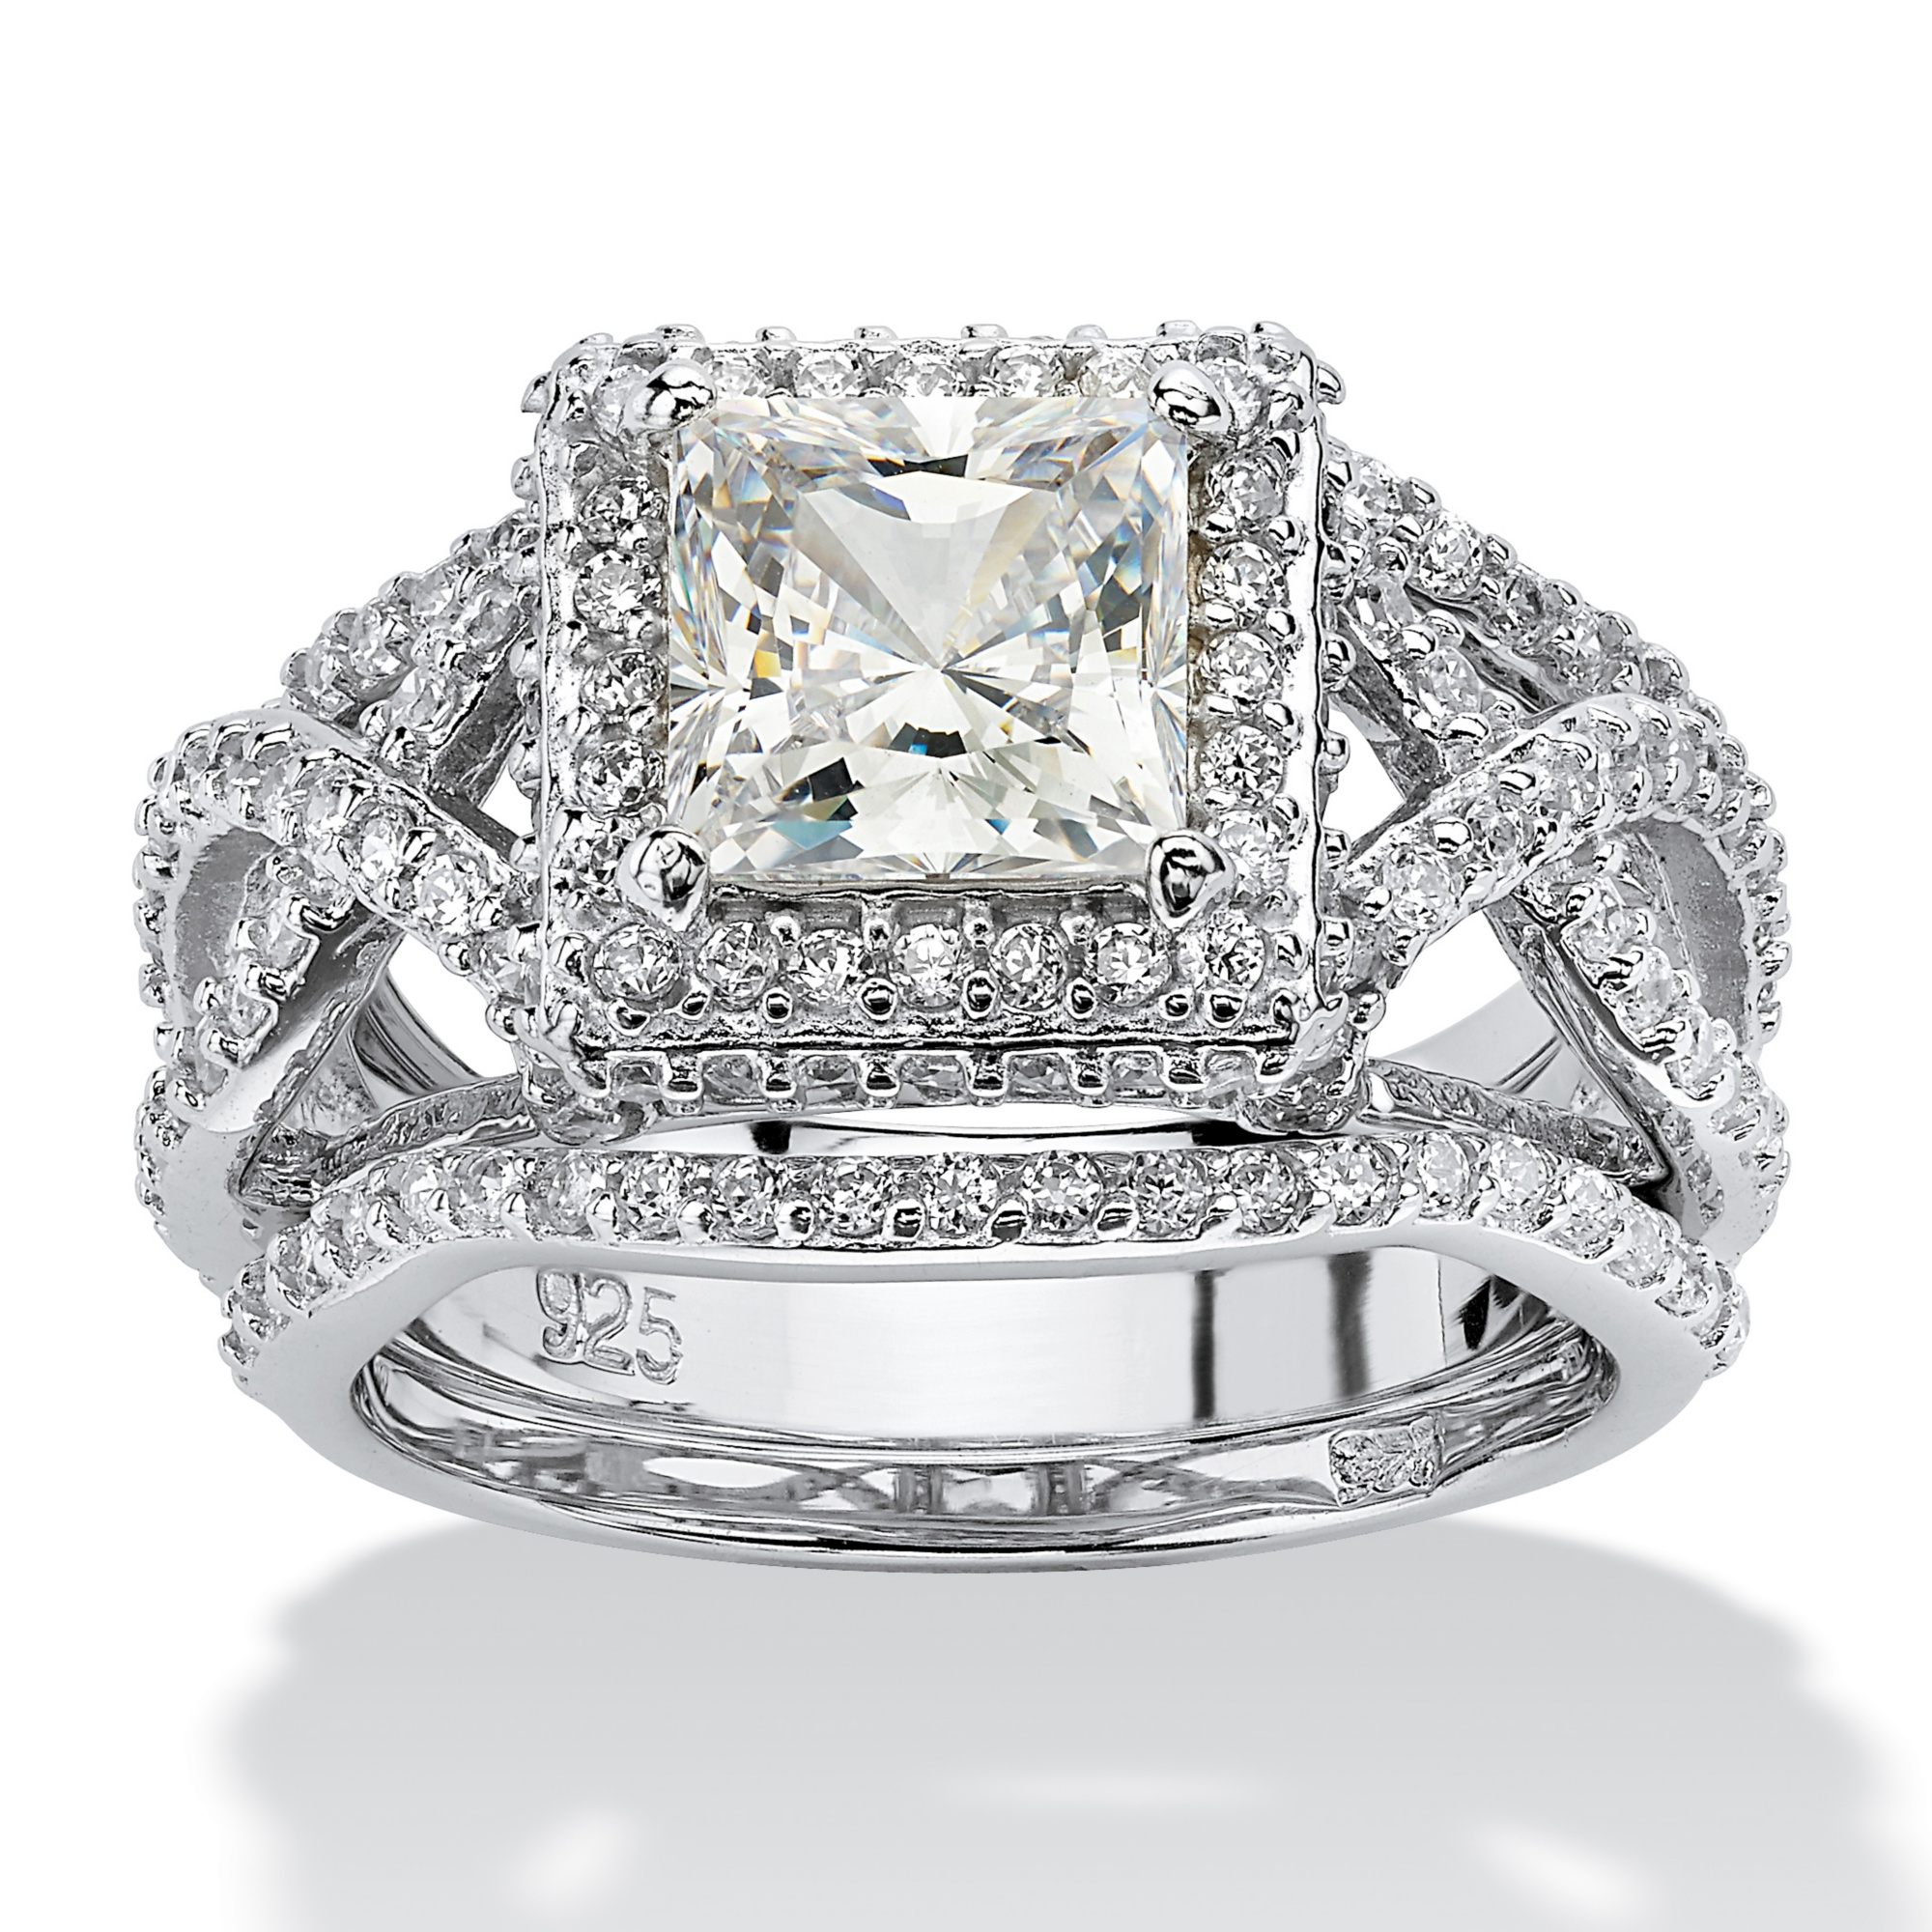 2 82 Tcw Princess Cut Cubic Zirconia Platinum Over Sterling Silver 3 Piece Halo Bridal Ring Set At Palmbeach Jewelry